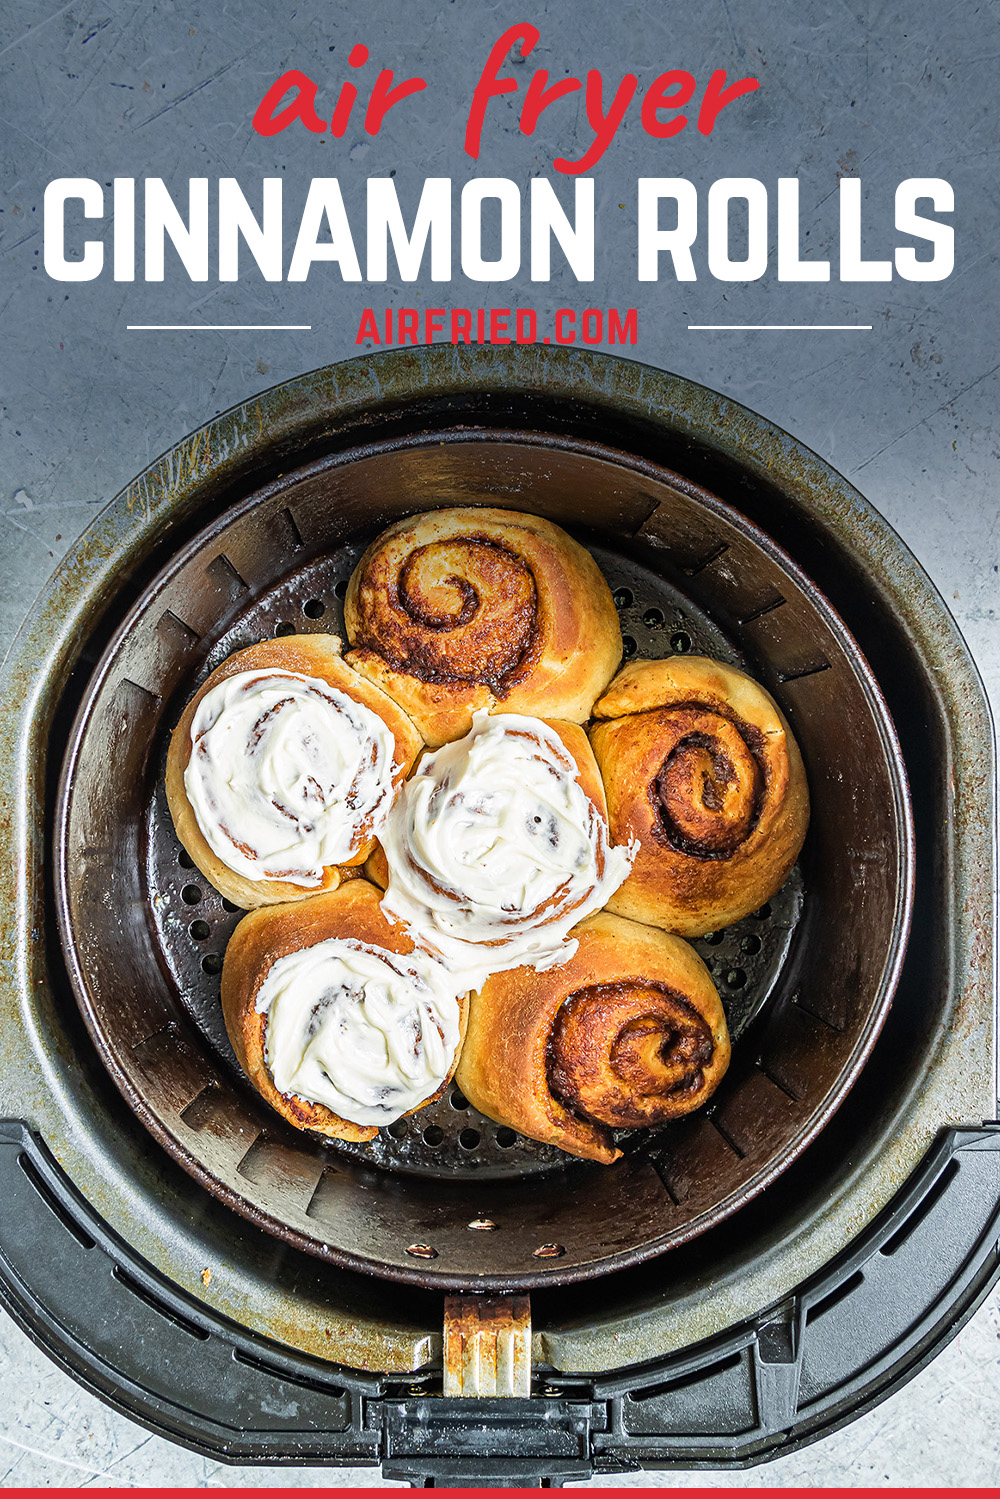 You can make your own cinnamon rolls in an air fryer.  This dough recipe works wonderfully with the air fryer to give you a nice, fluffy egg roll.